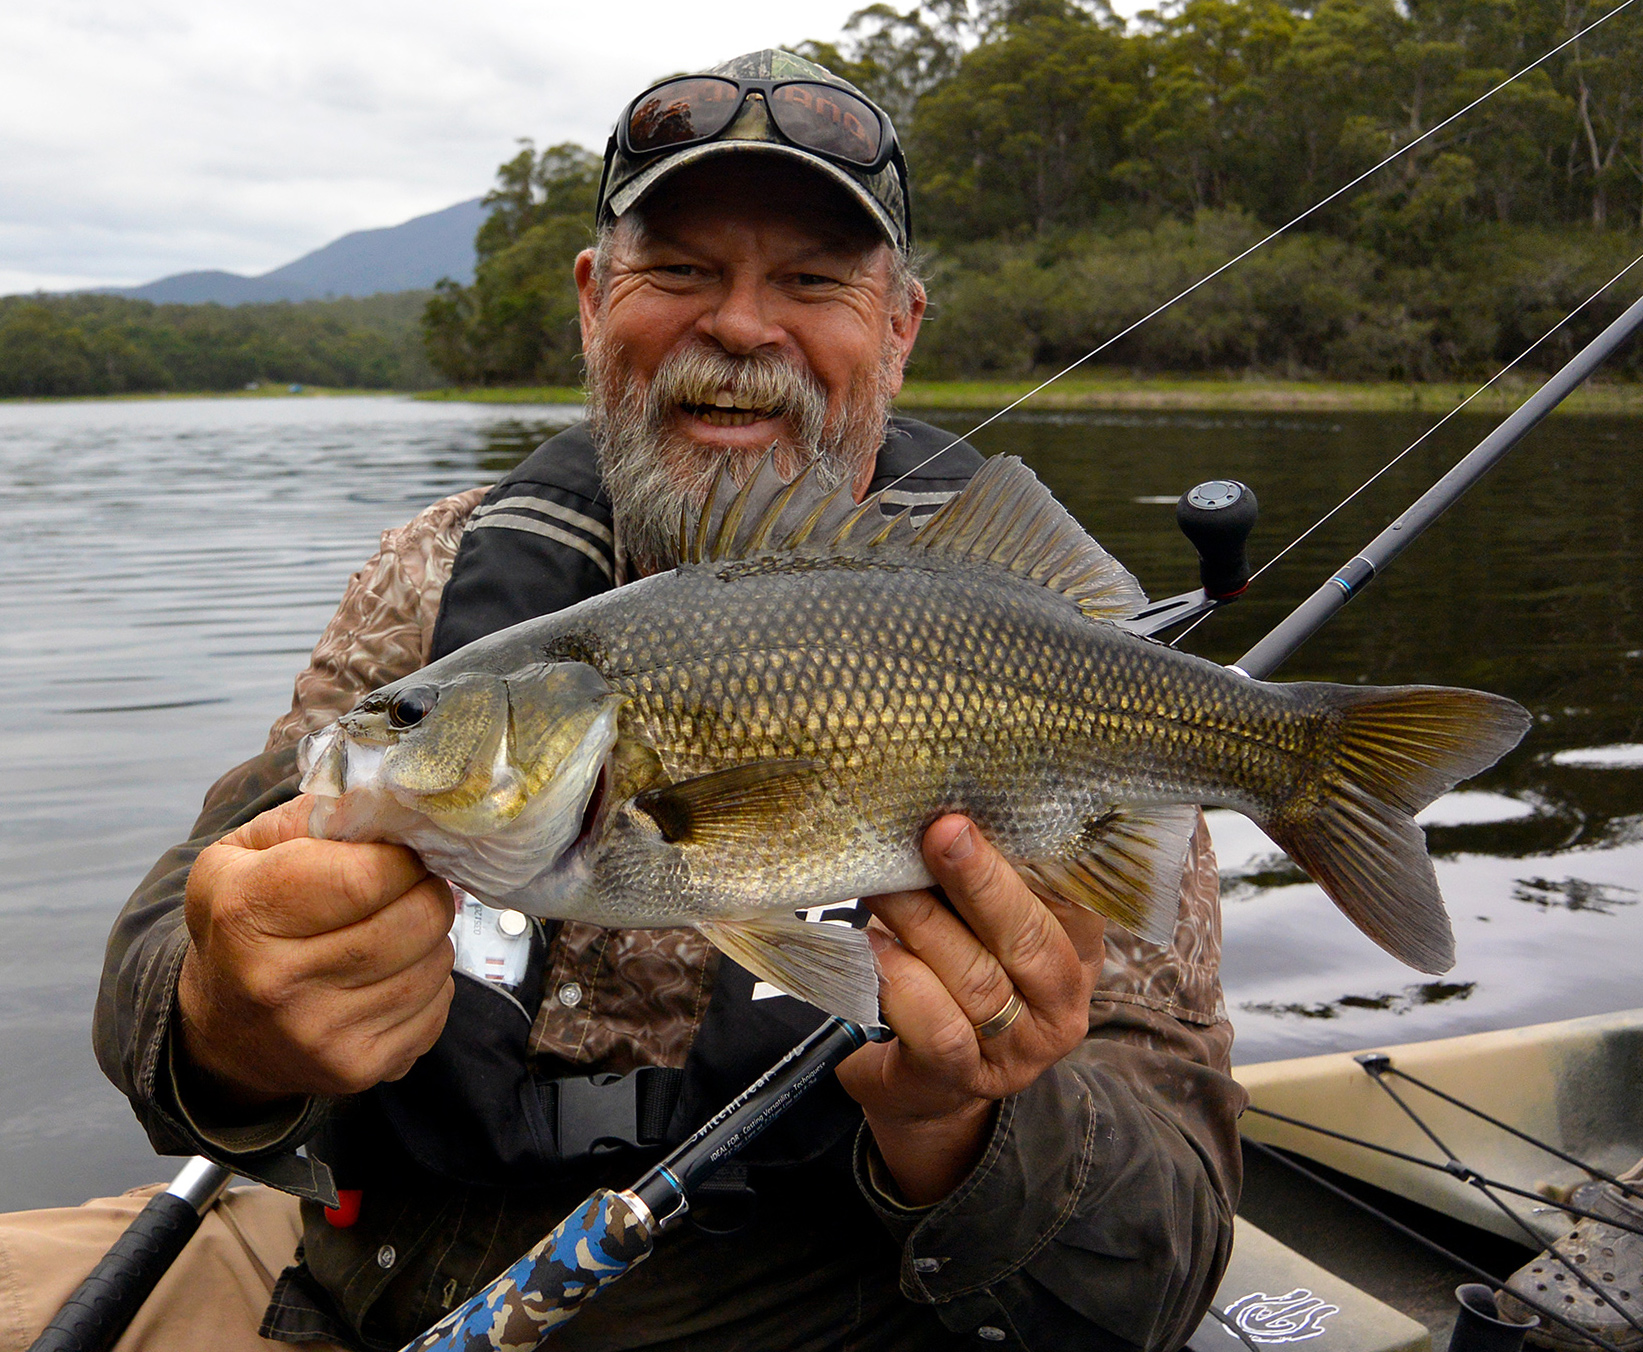 While 20 to 30 cm fish often dominate catches, some days you'll encounter fish in the high 30s and low 40s on a reasonably regular basis... and they all pull hard!